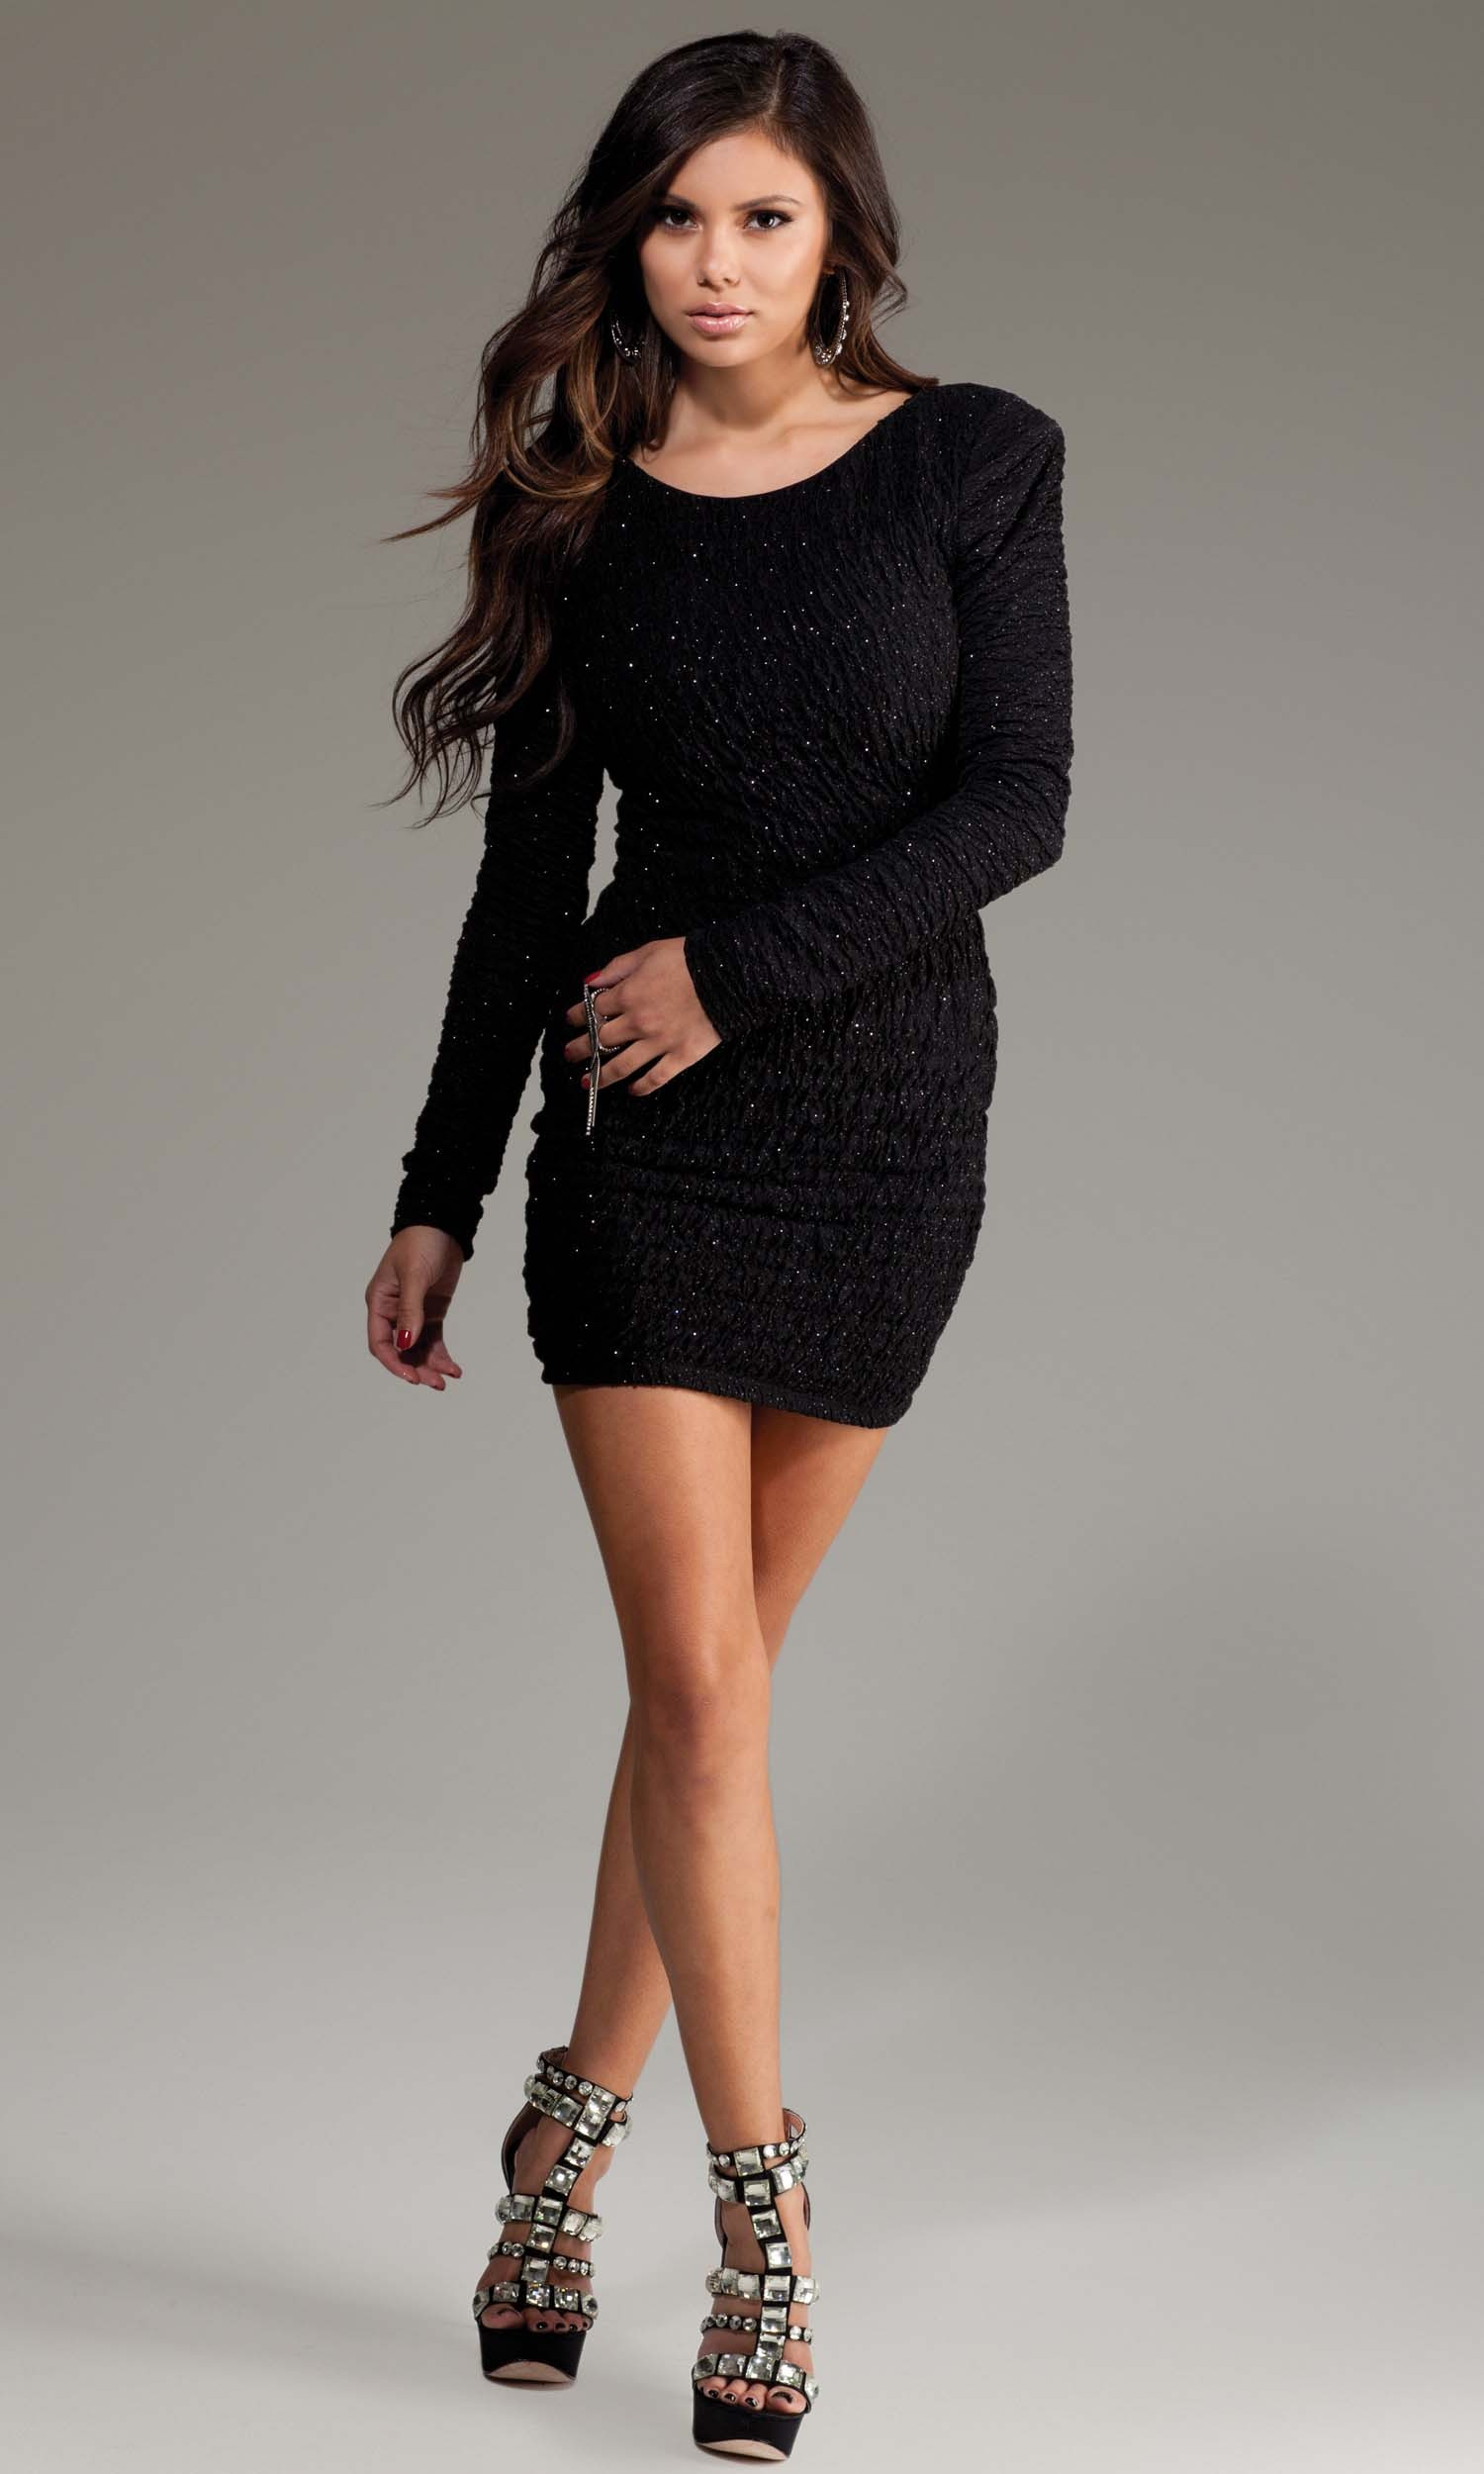 Black Mini Dress with Sleeves